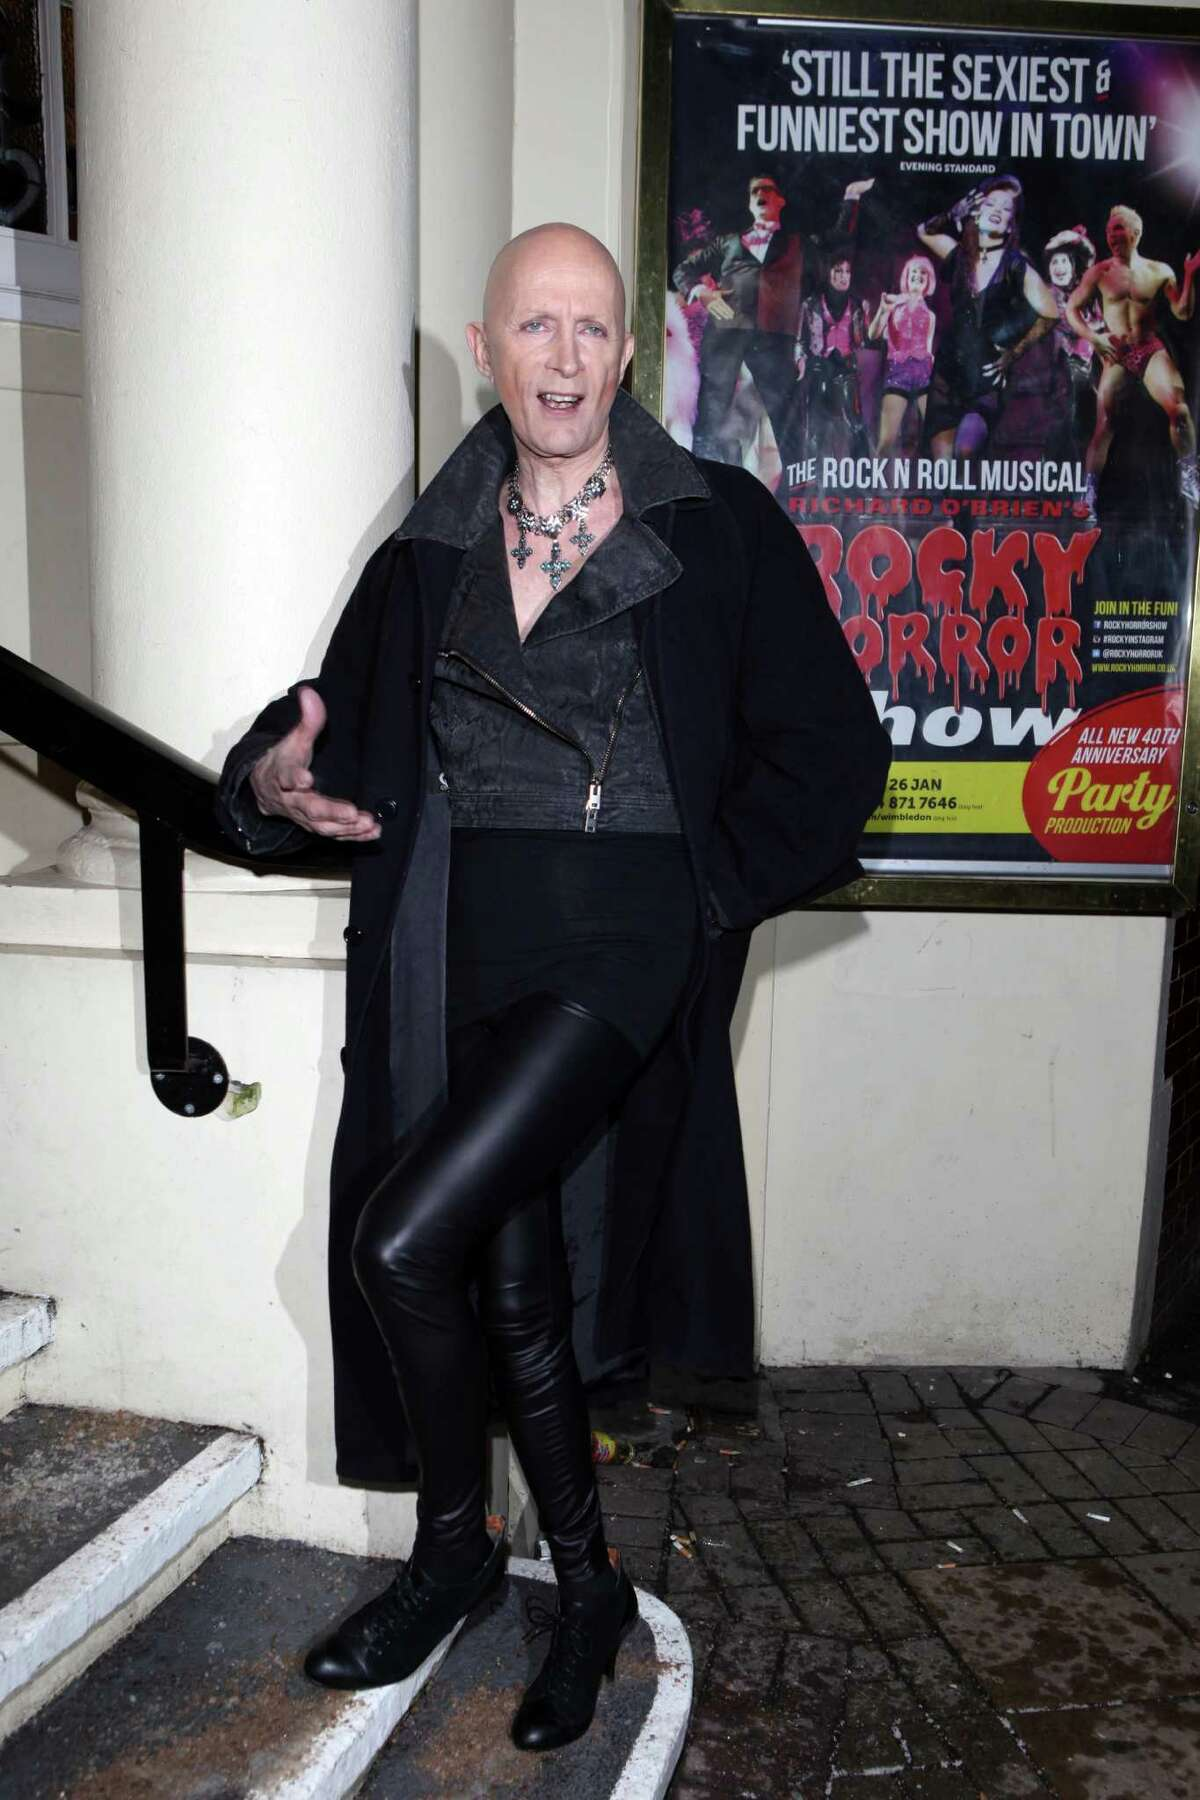 Richard O'Brien didn't just play the role of Riff Raff in the film version of